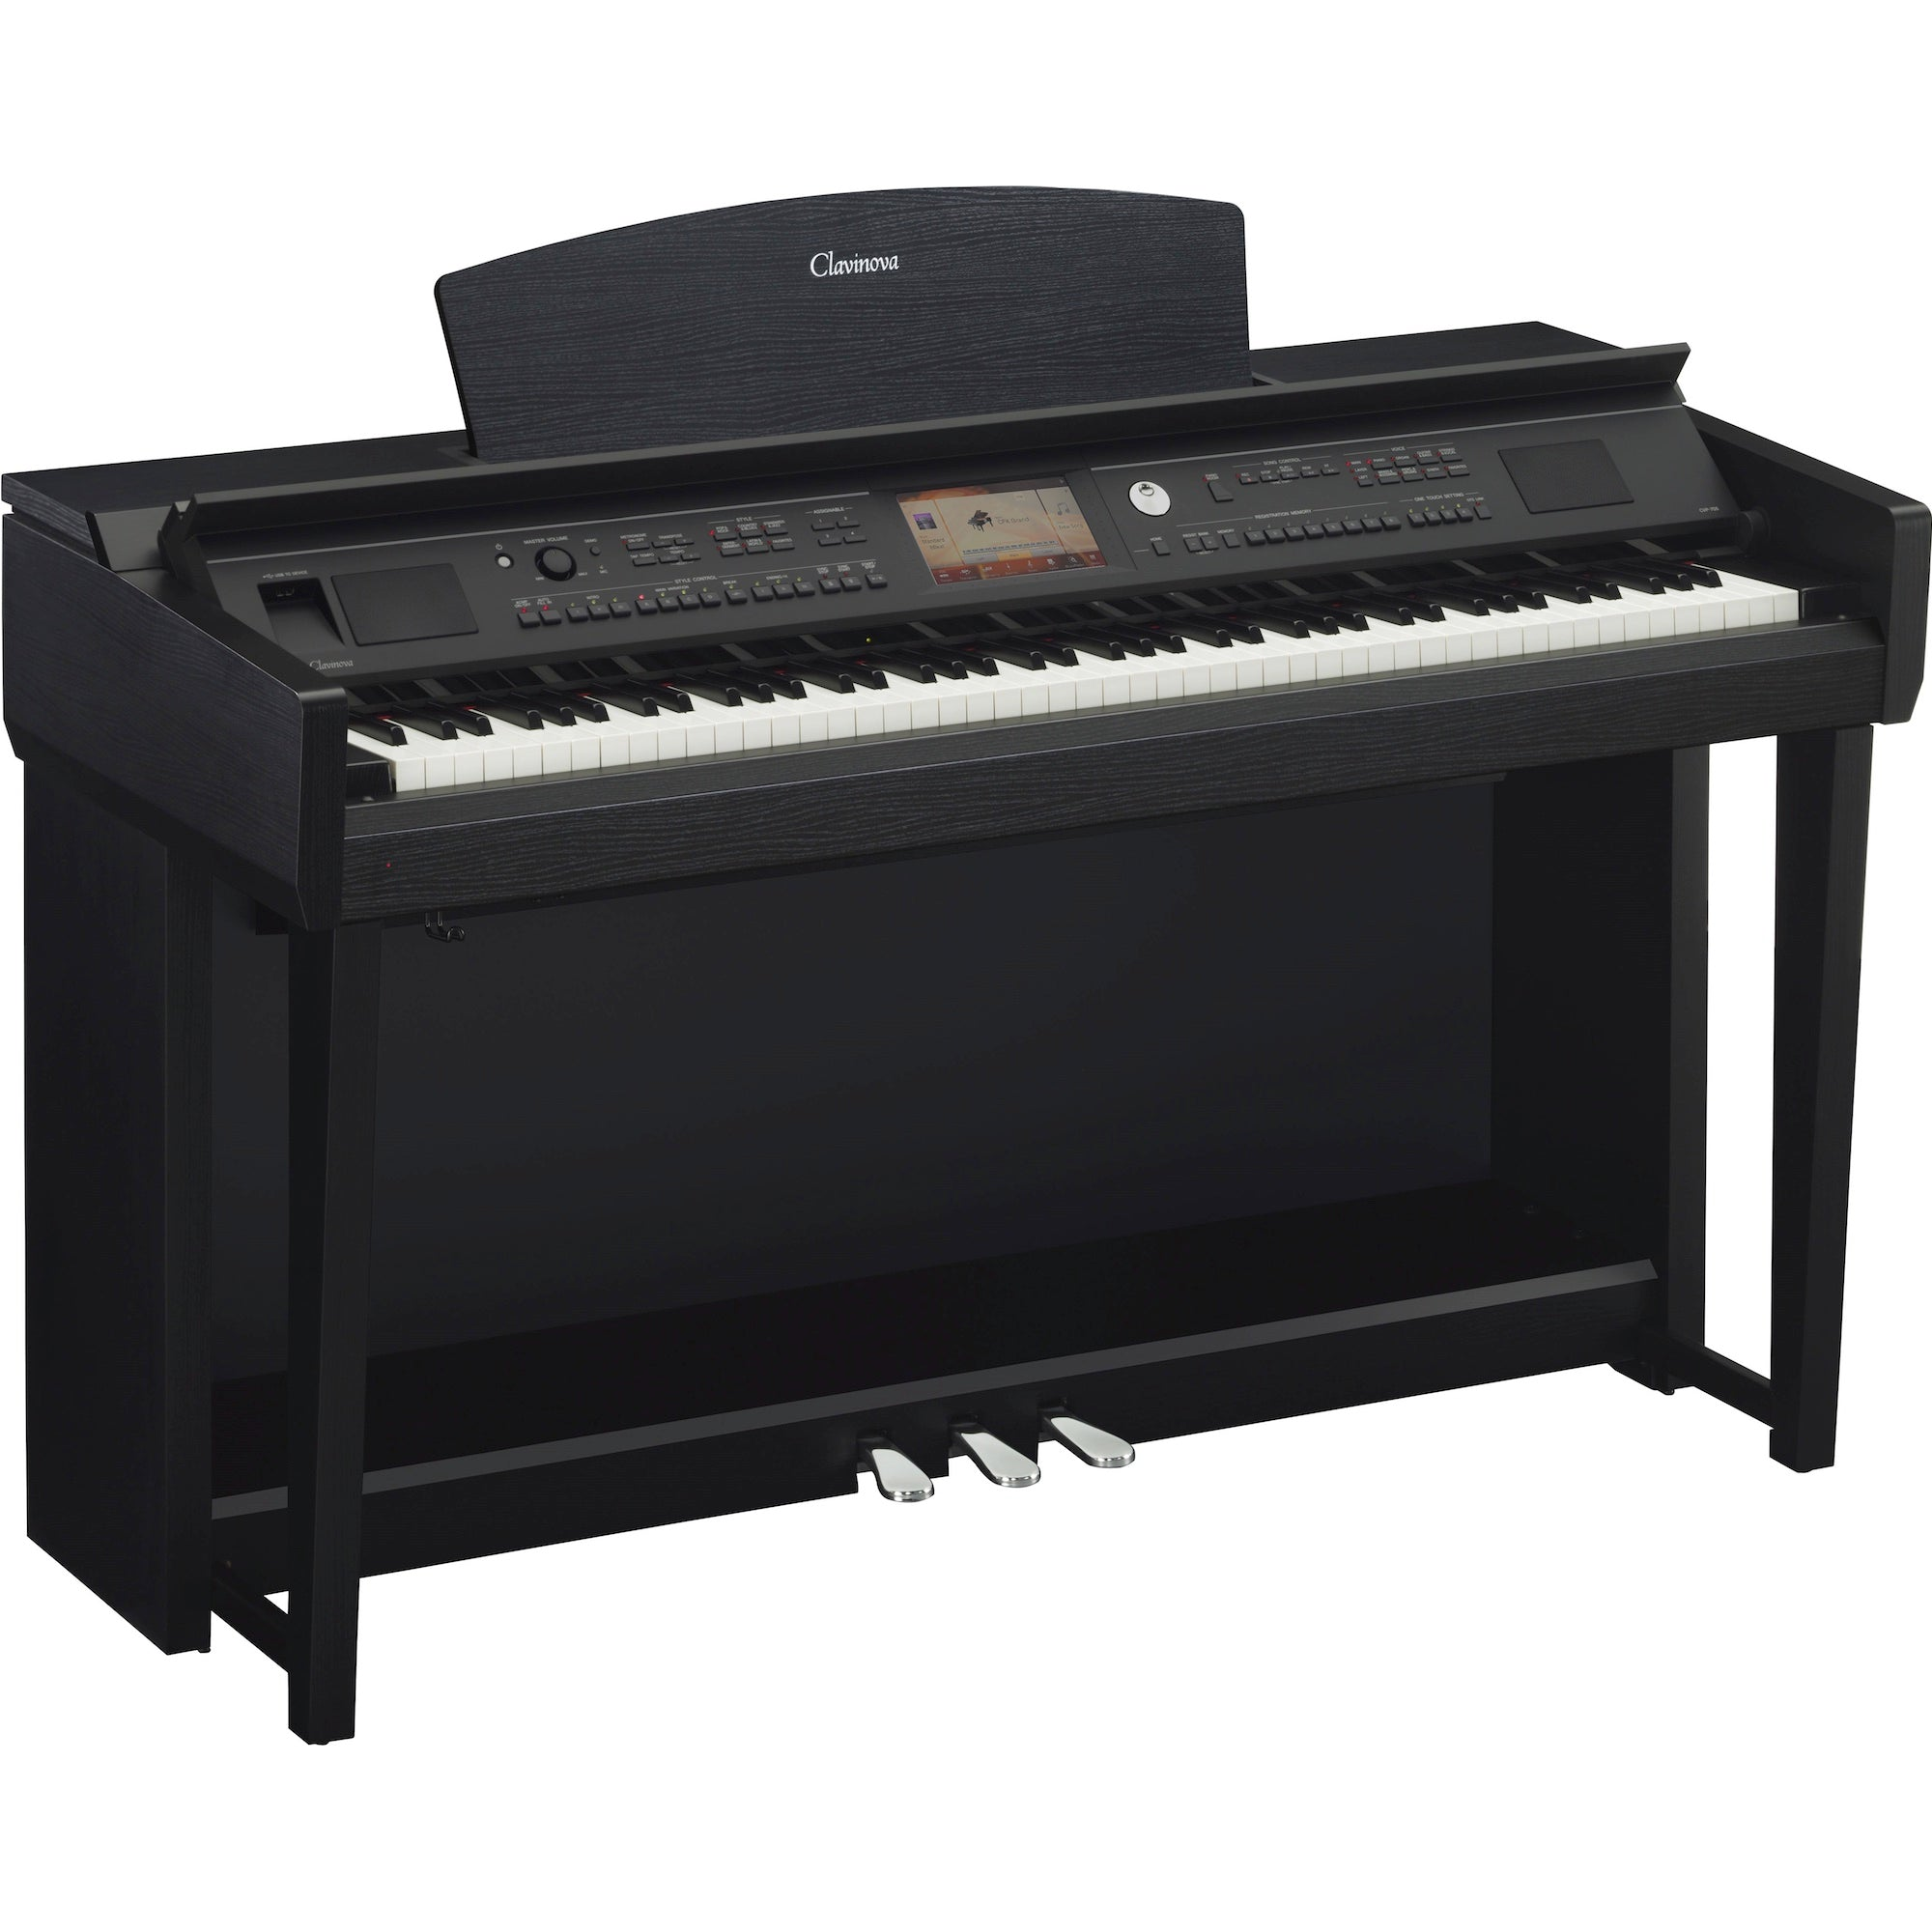 Yamaha Clavinova CVP-705B Digital Home Piano - Black Walnut | Music Experience | Shop Online | South Africa